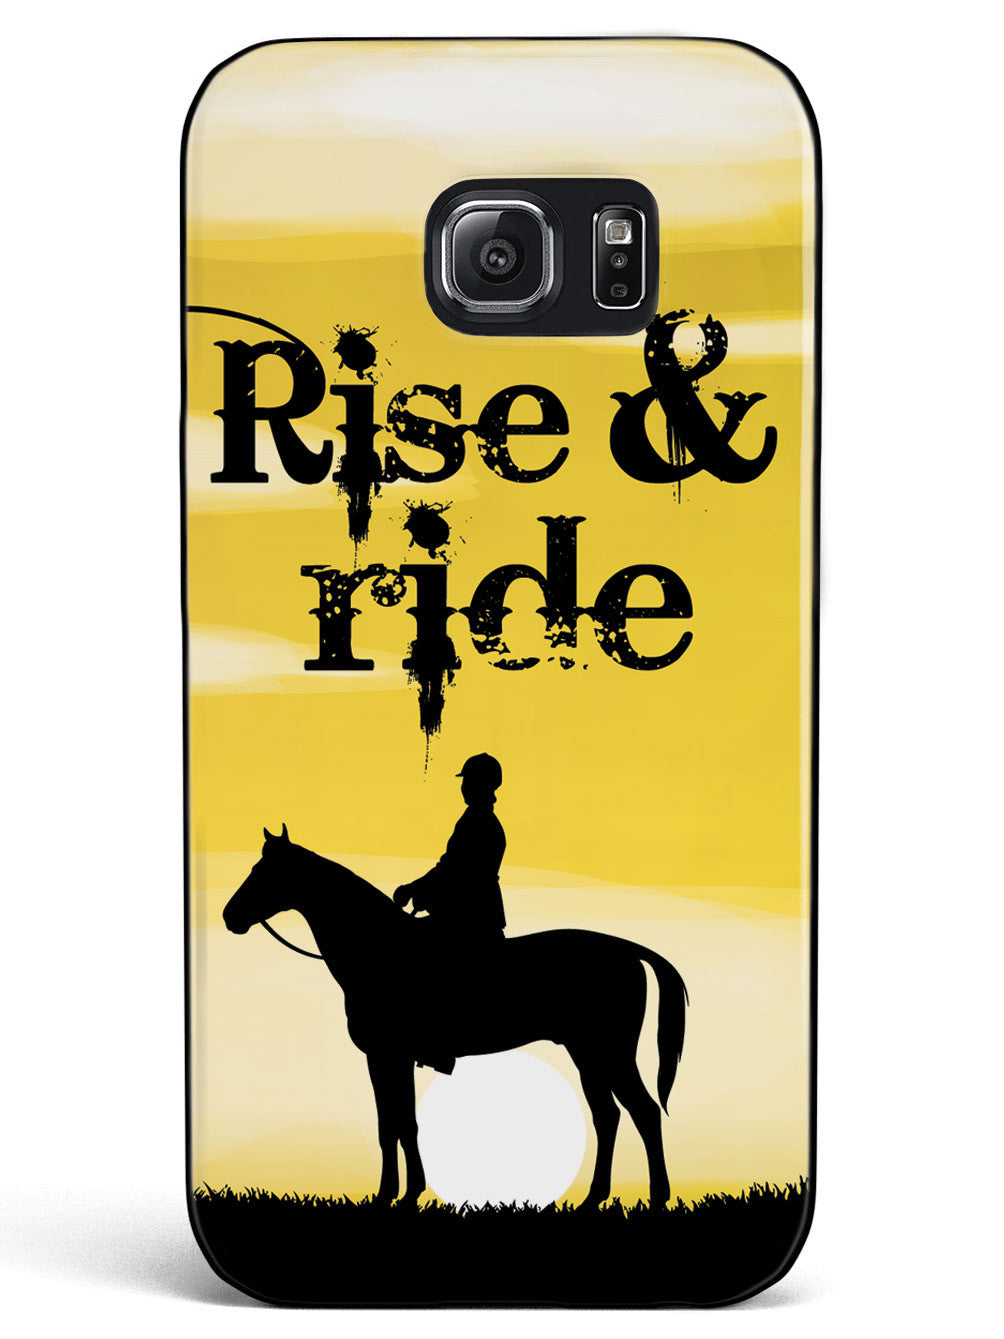 Rise & Ride - Horse Riding Equestrian Case